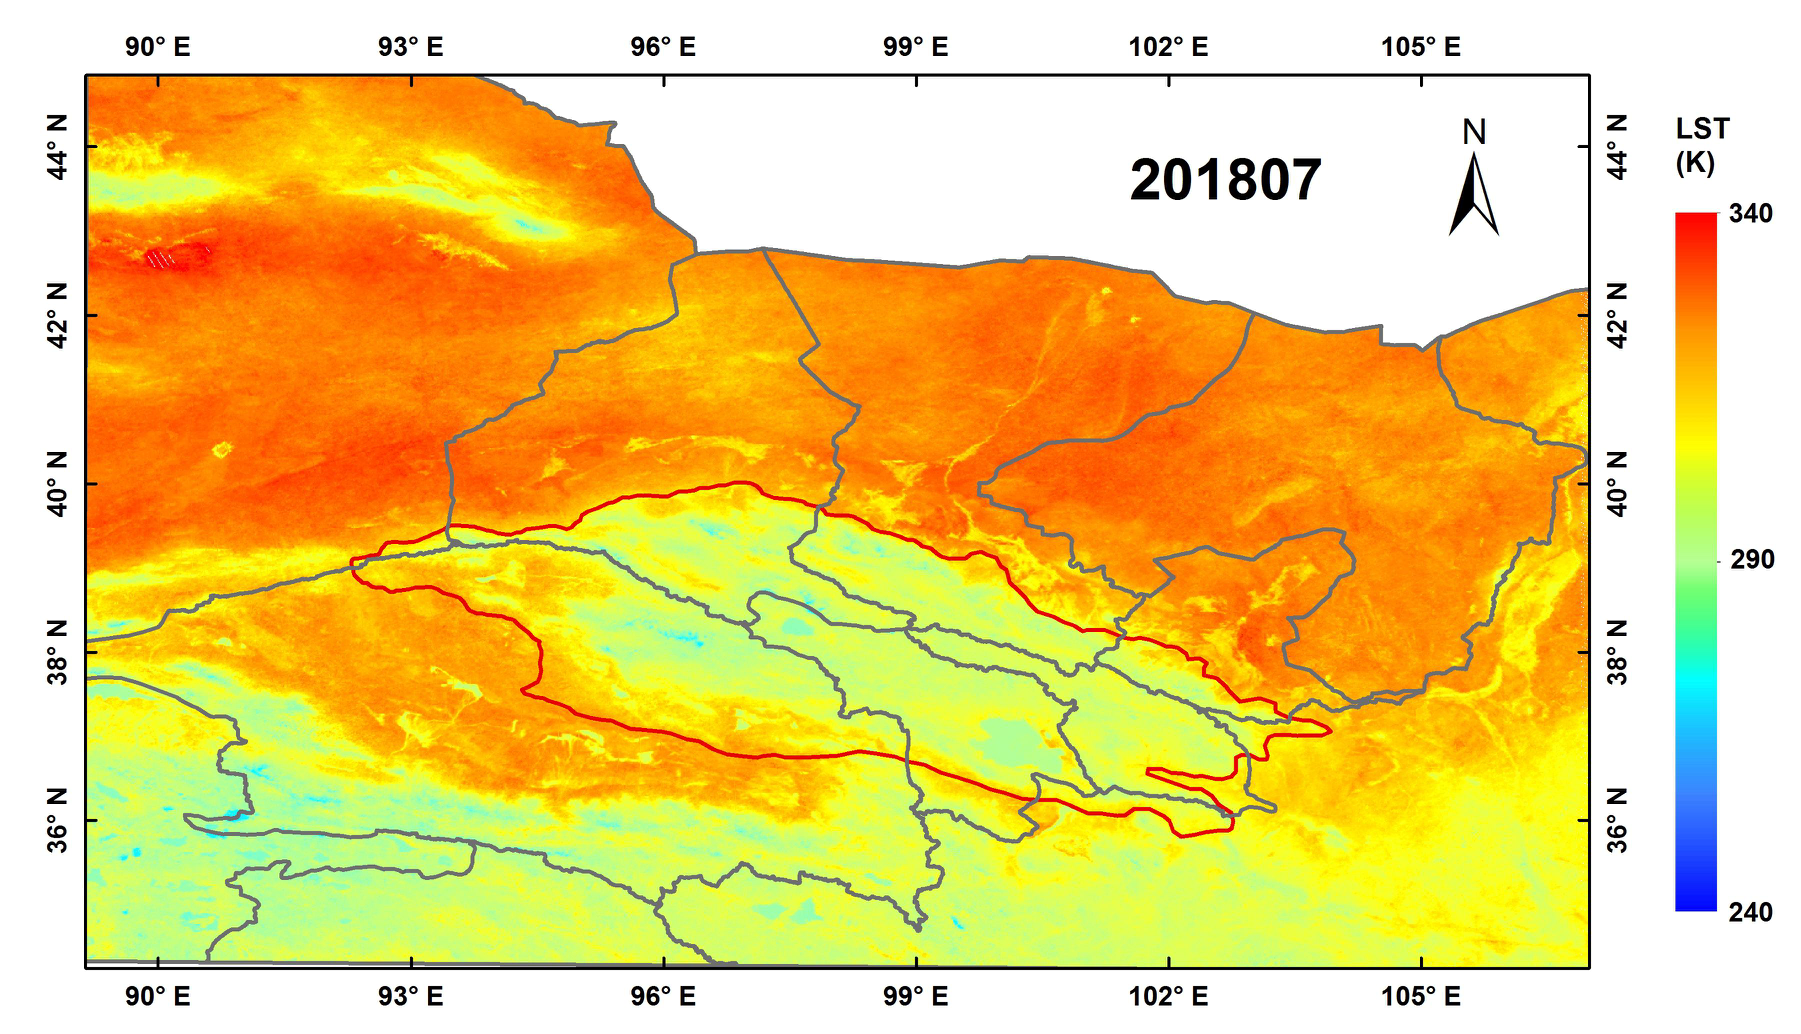 Daily 0.01 °× 0.01 ° surface temperature data (v1.0) based on myd21a1 temperature data in Qilian Mountain Area (2018)